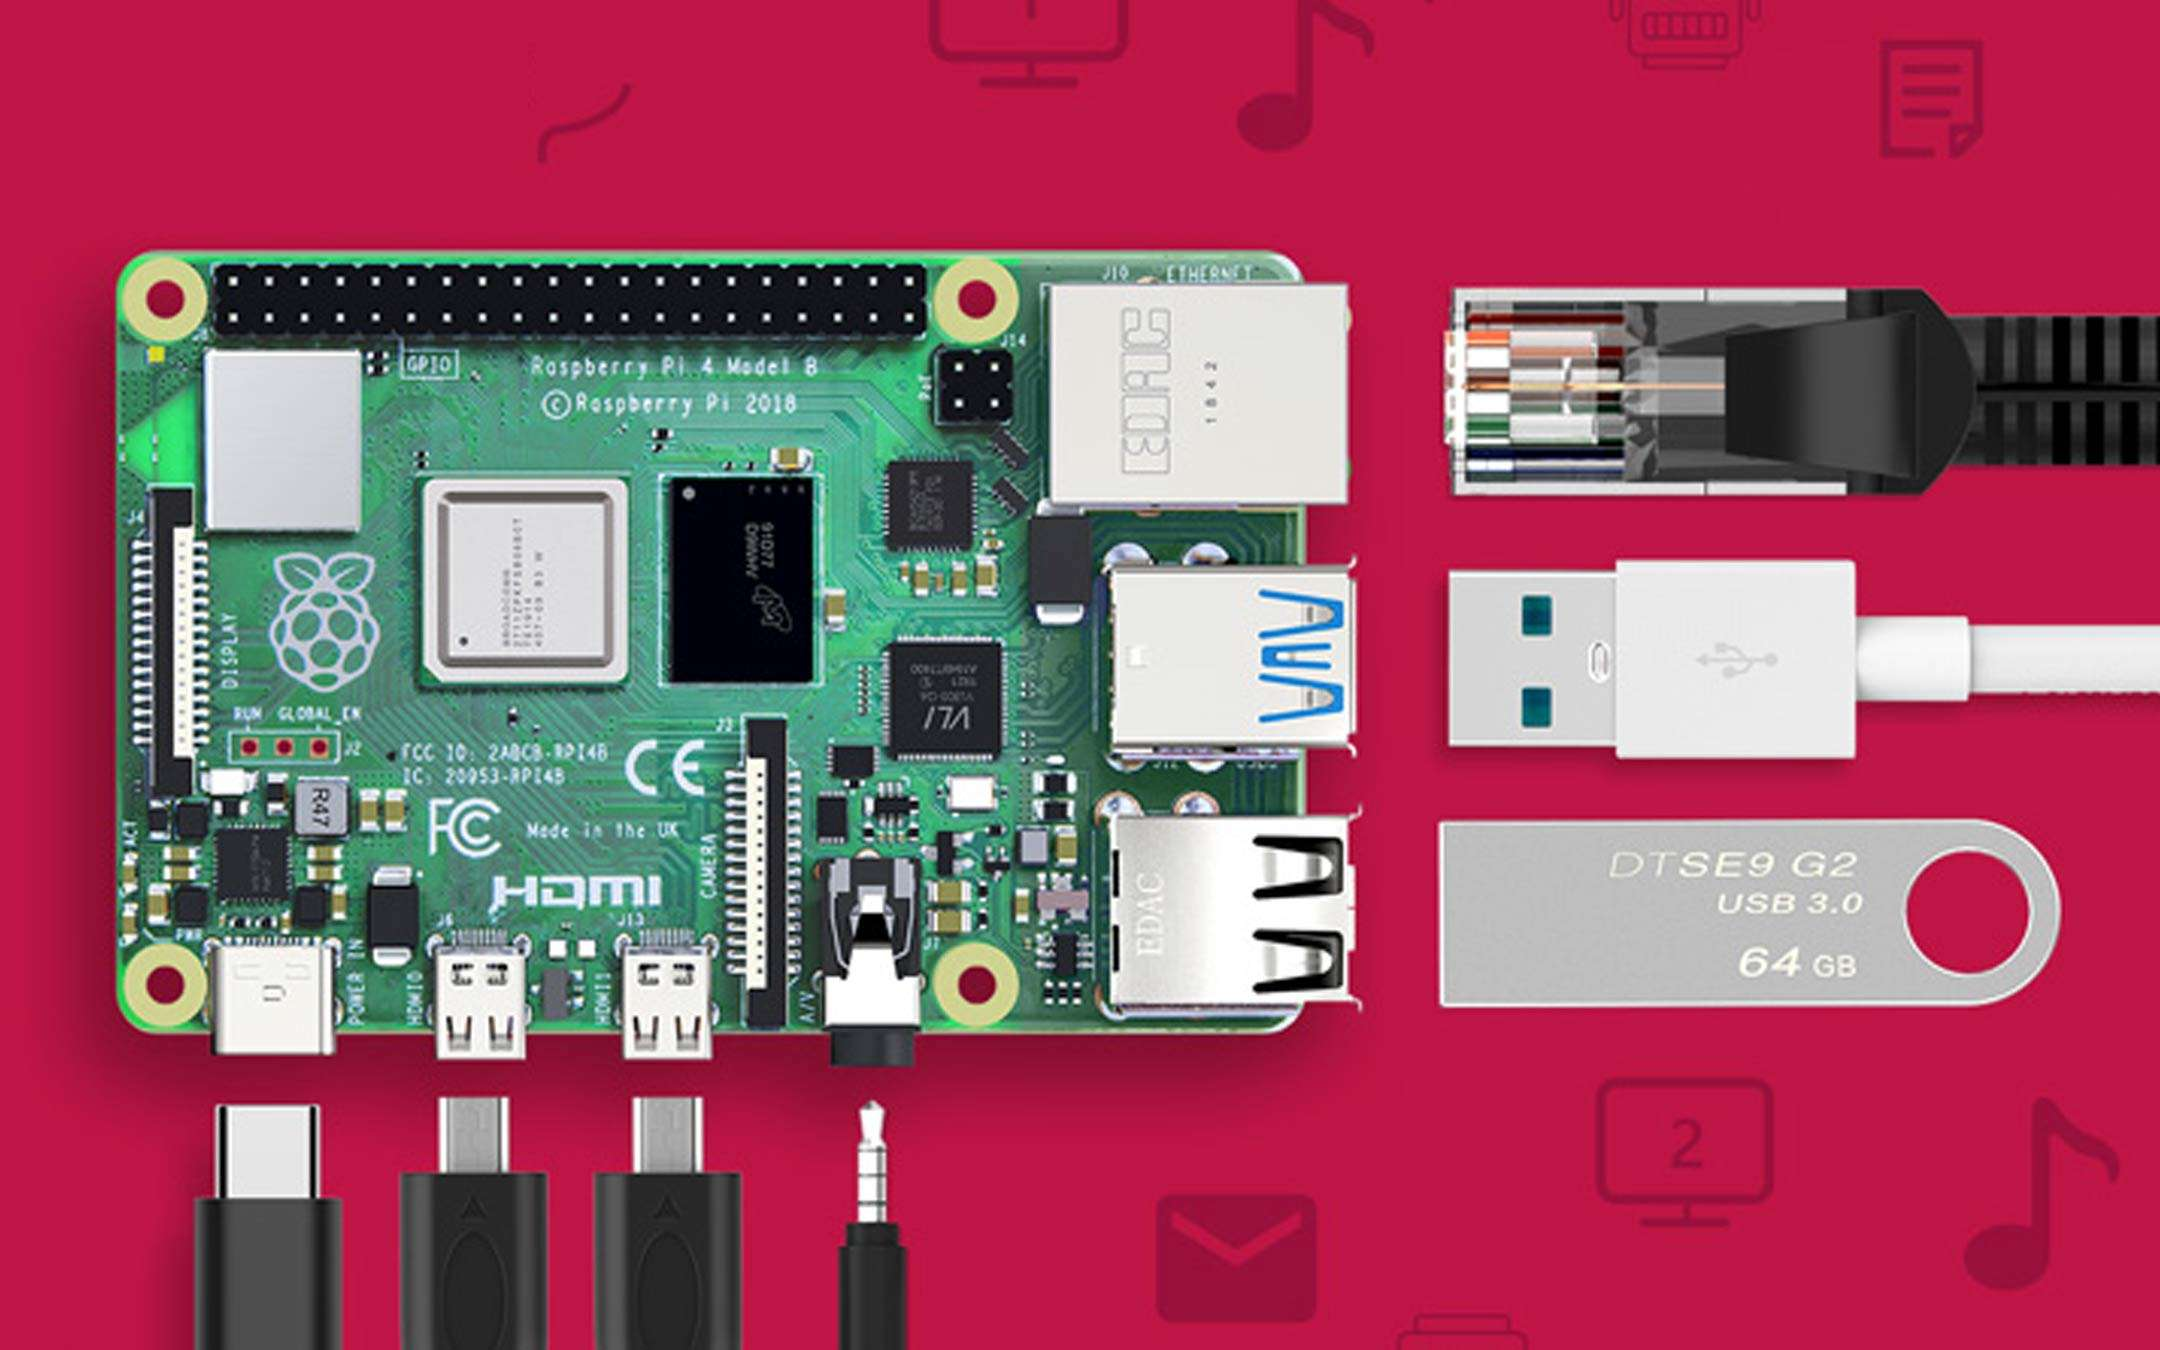 The Raspberry Pi 4 Bqeel kit on flash offer